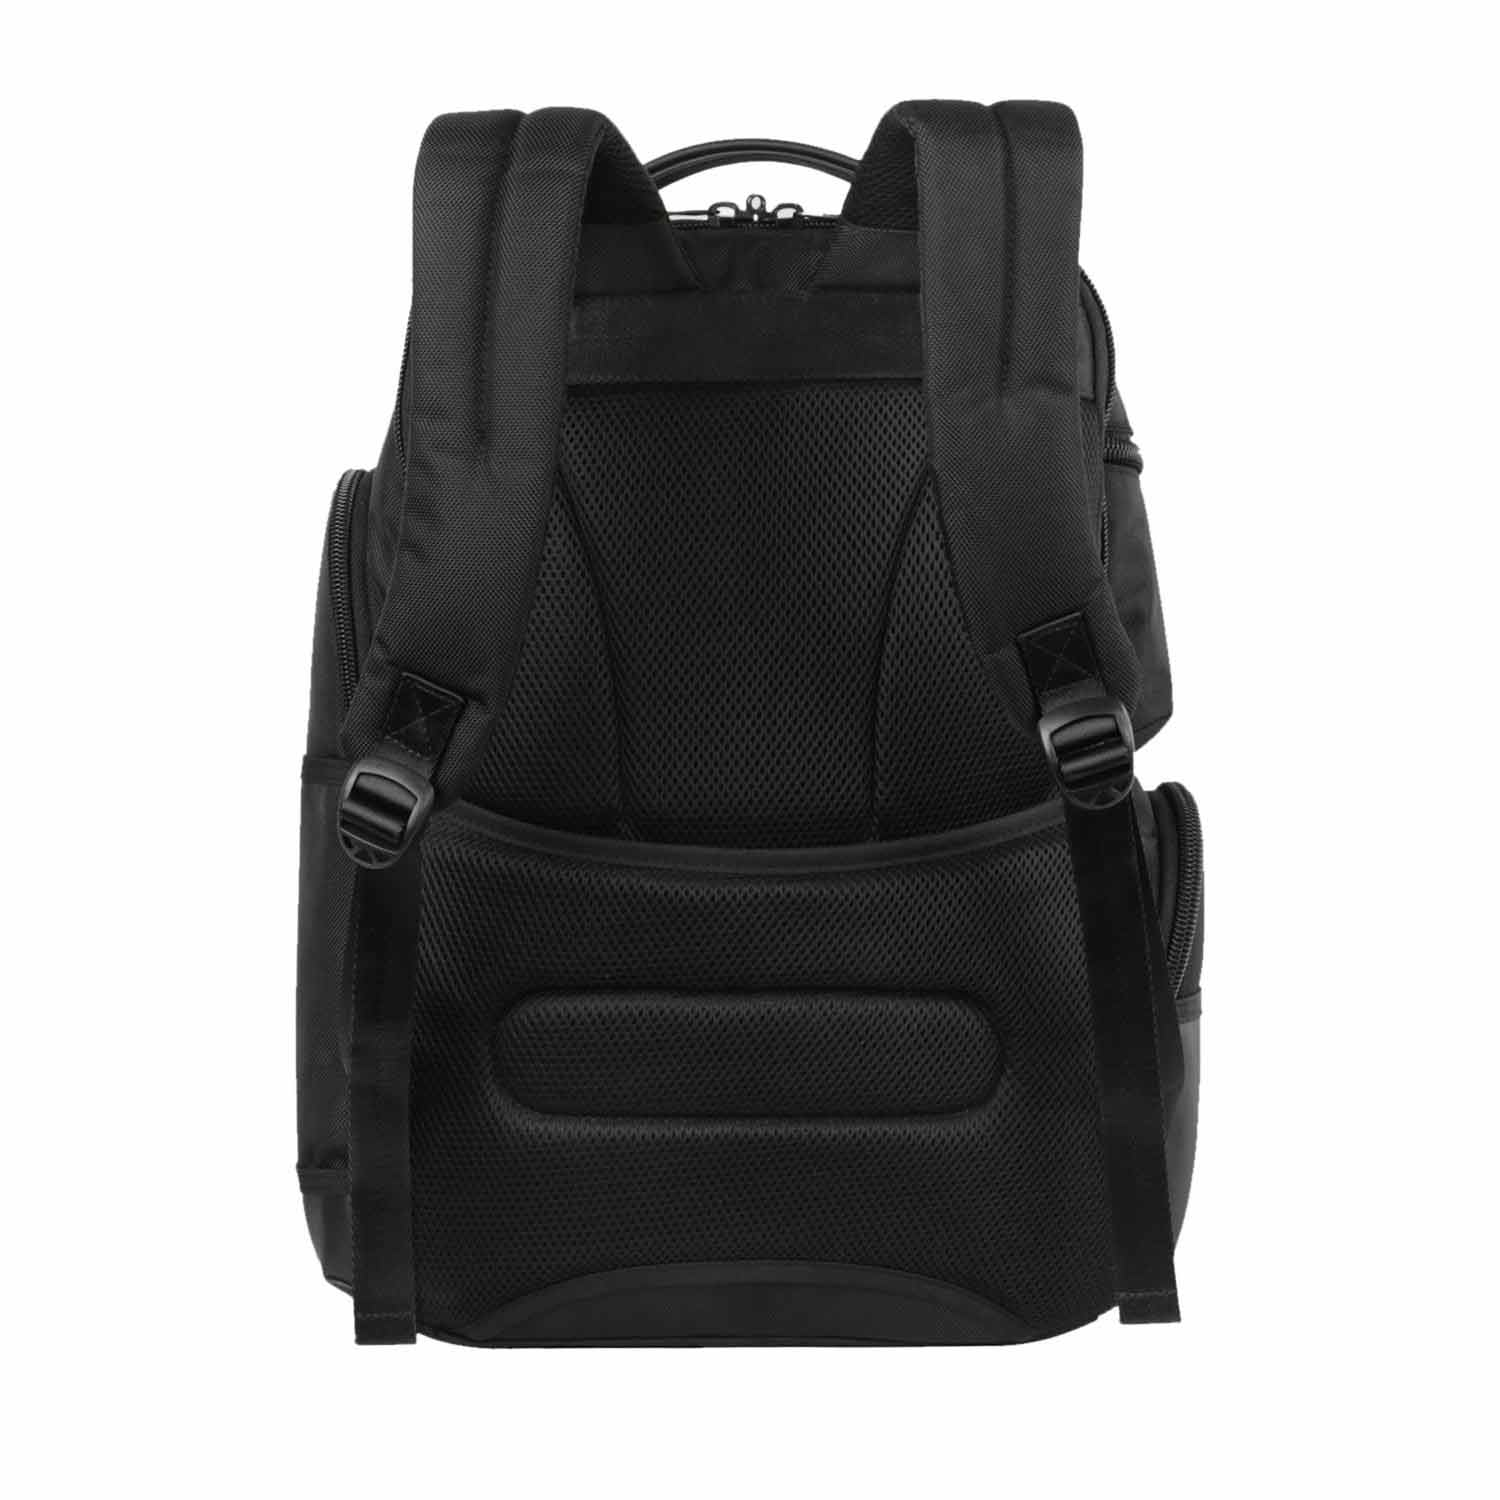 Matein Thamen Backpack - Matein